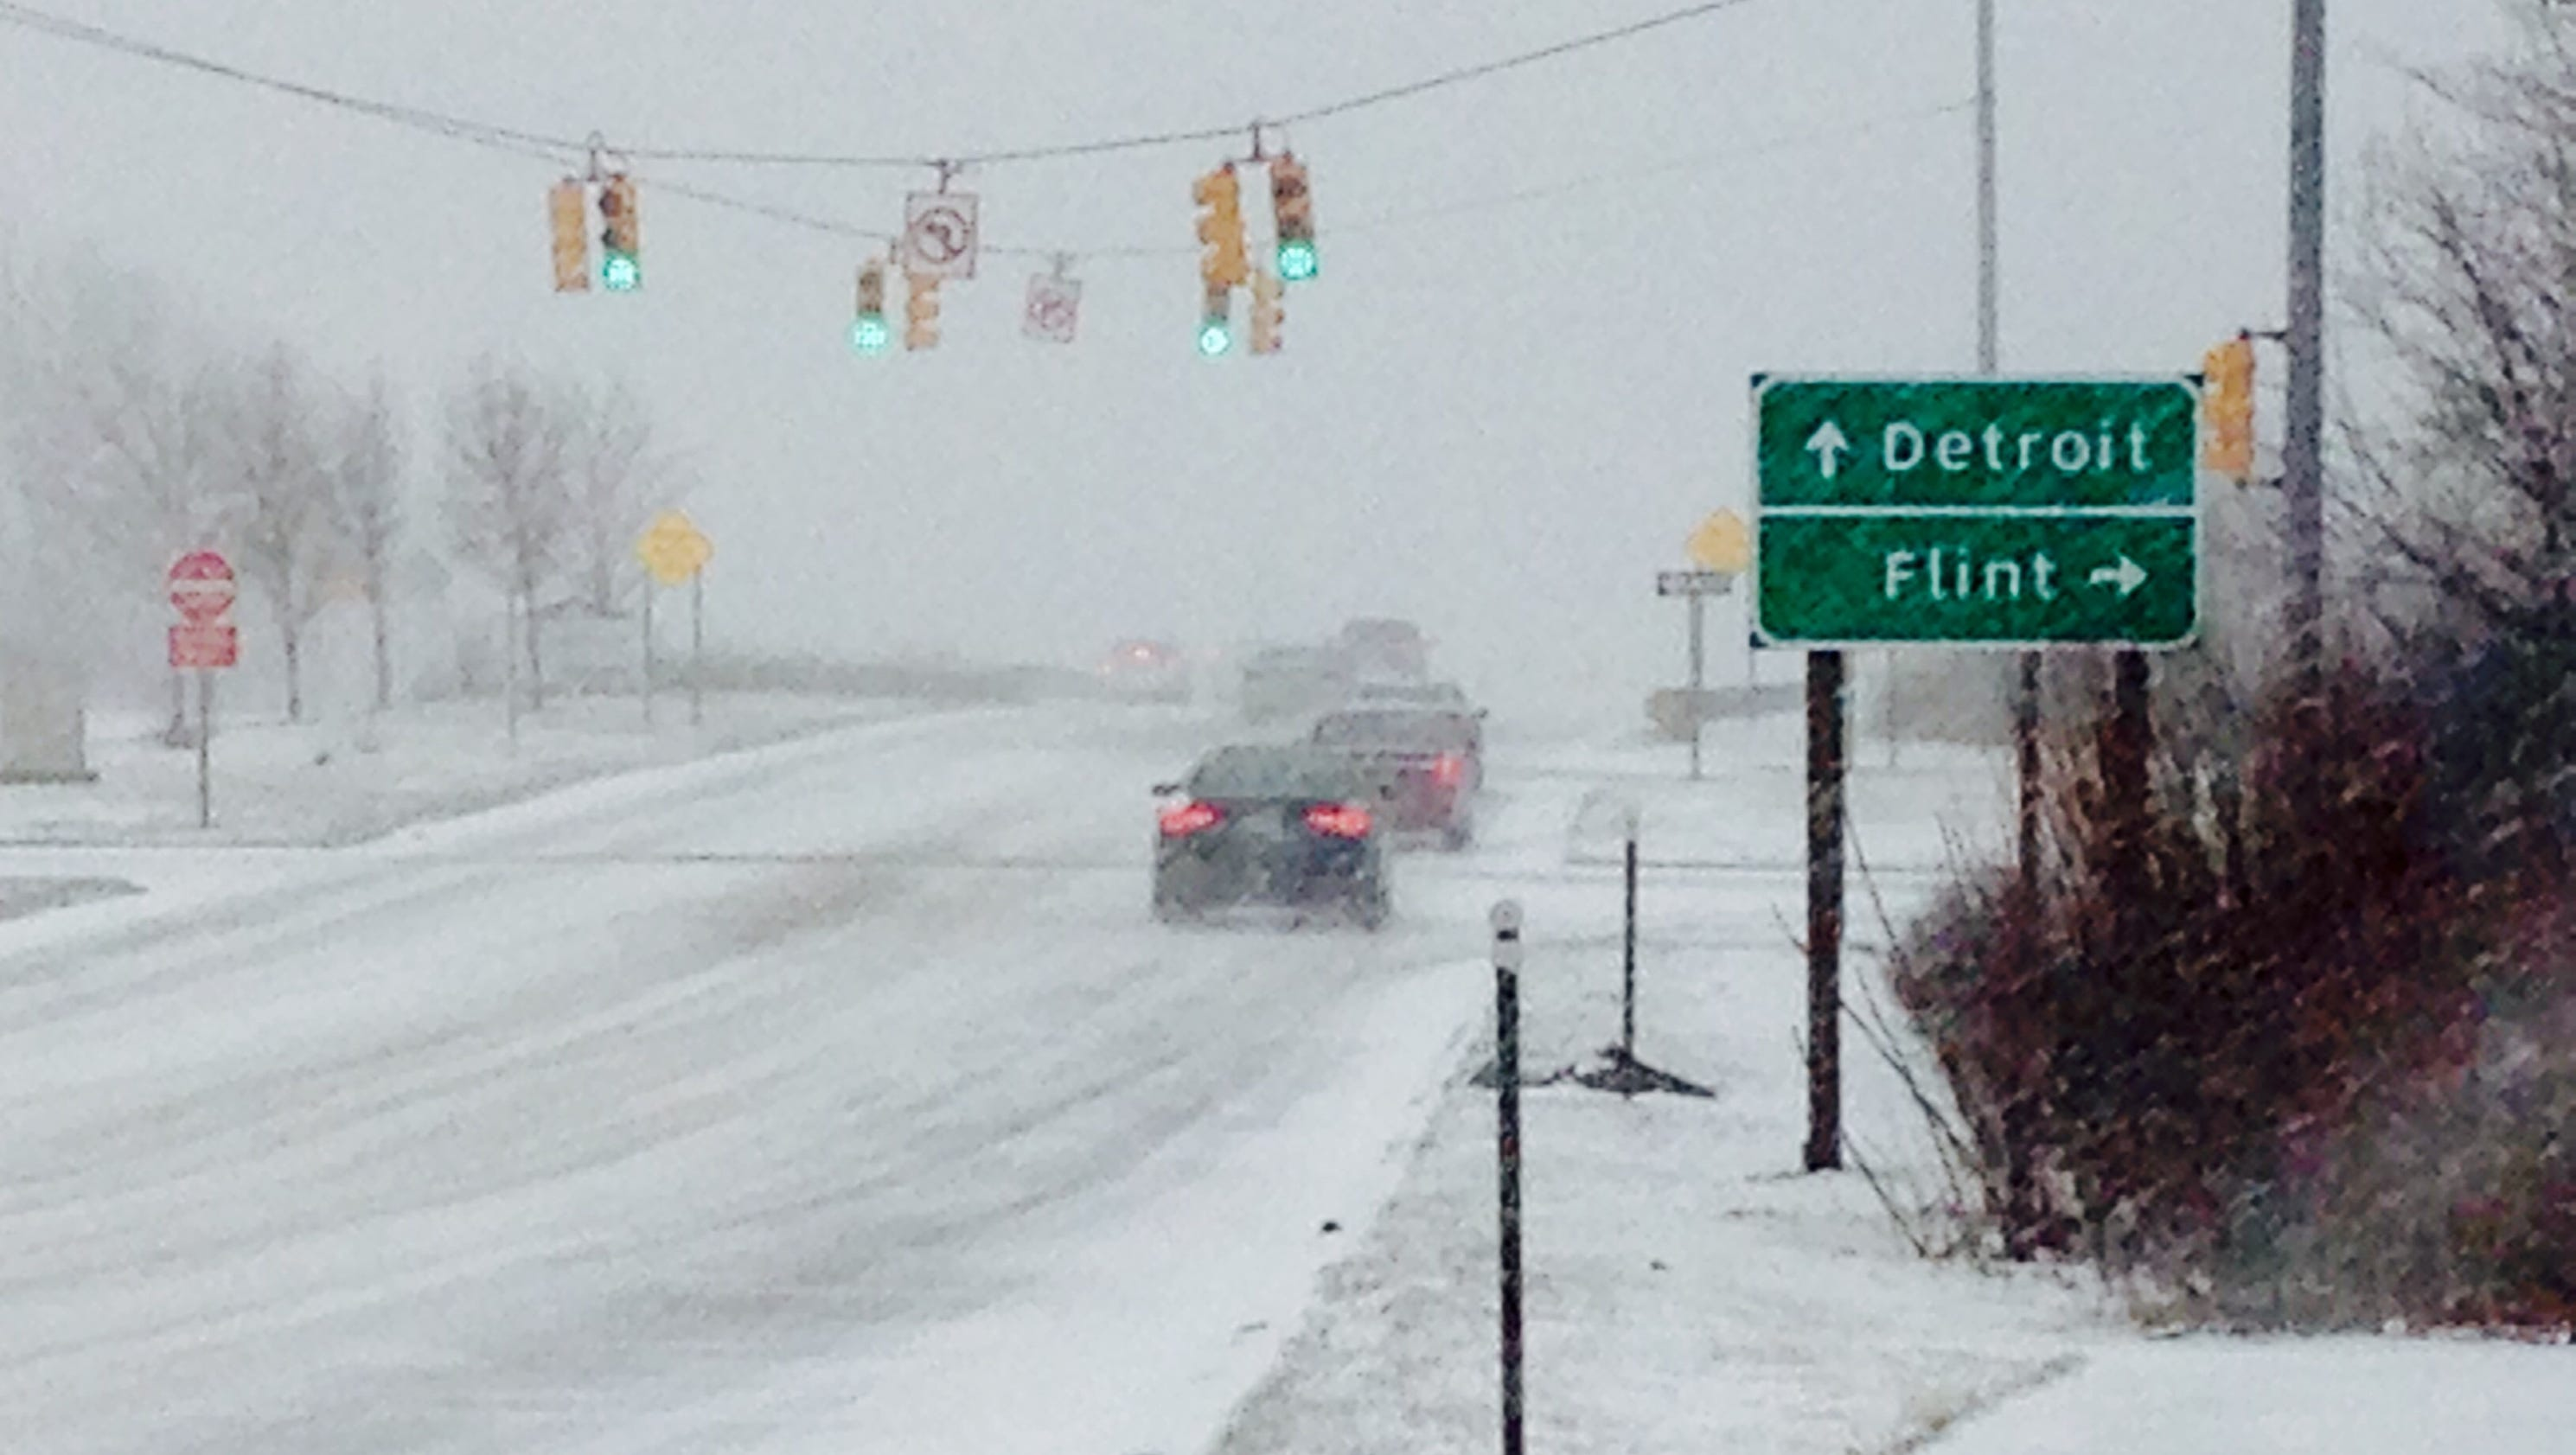 michigan roads among deadliest for winter crashes